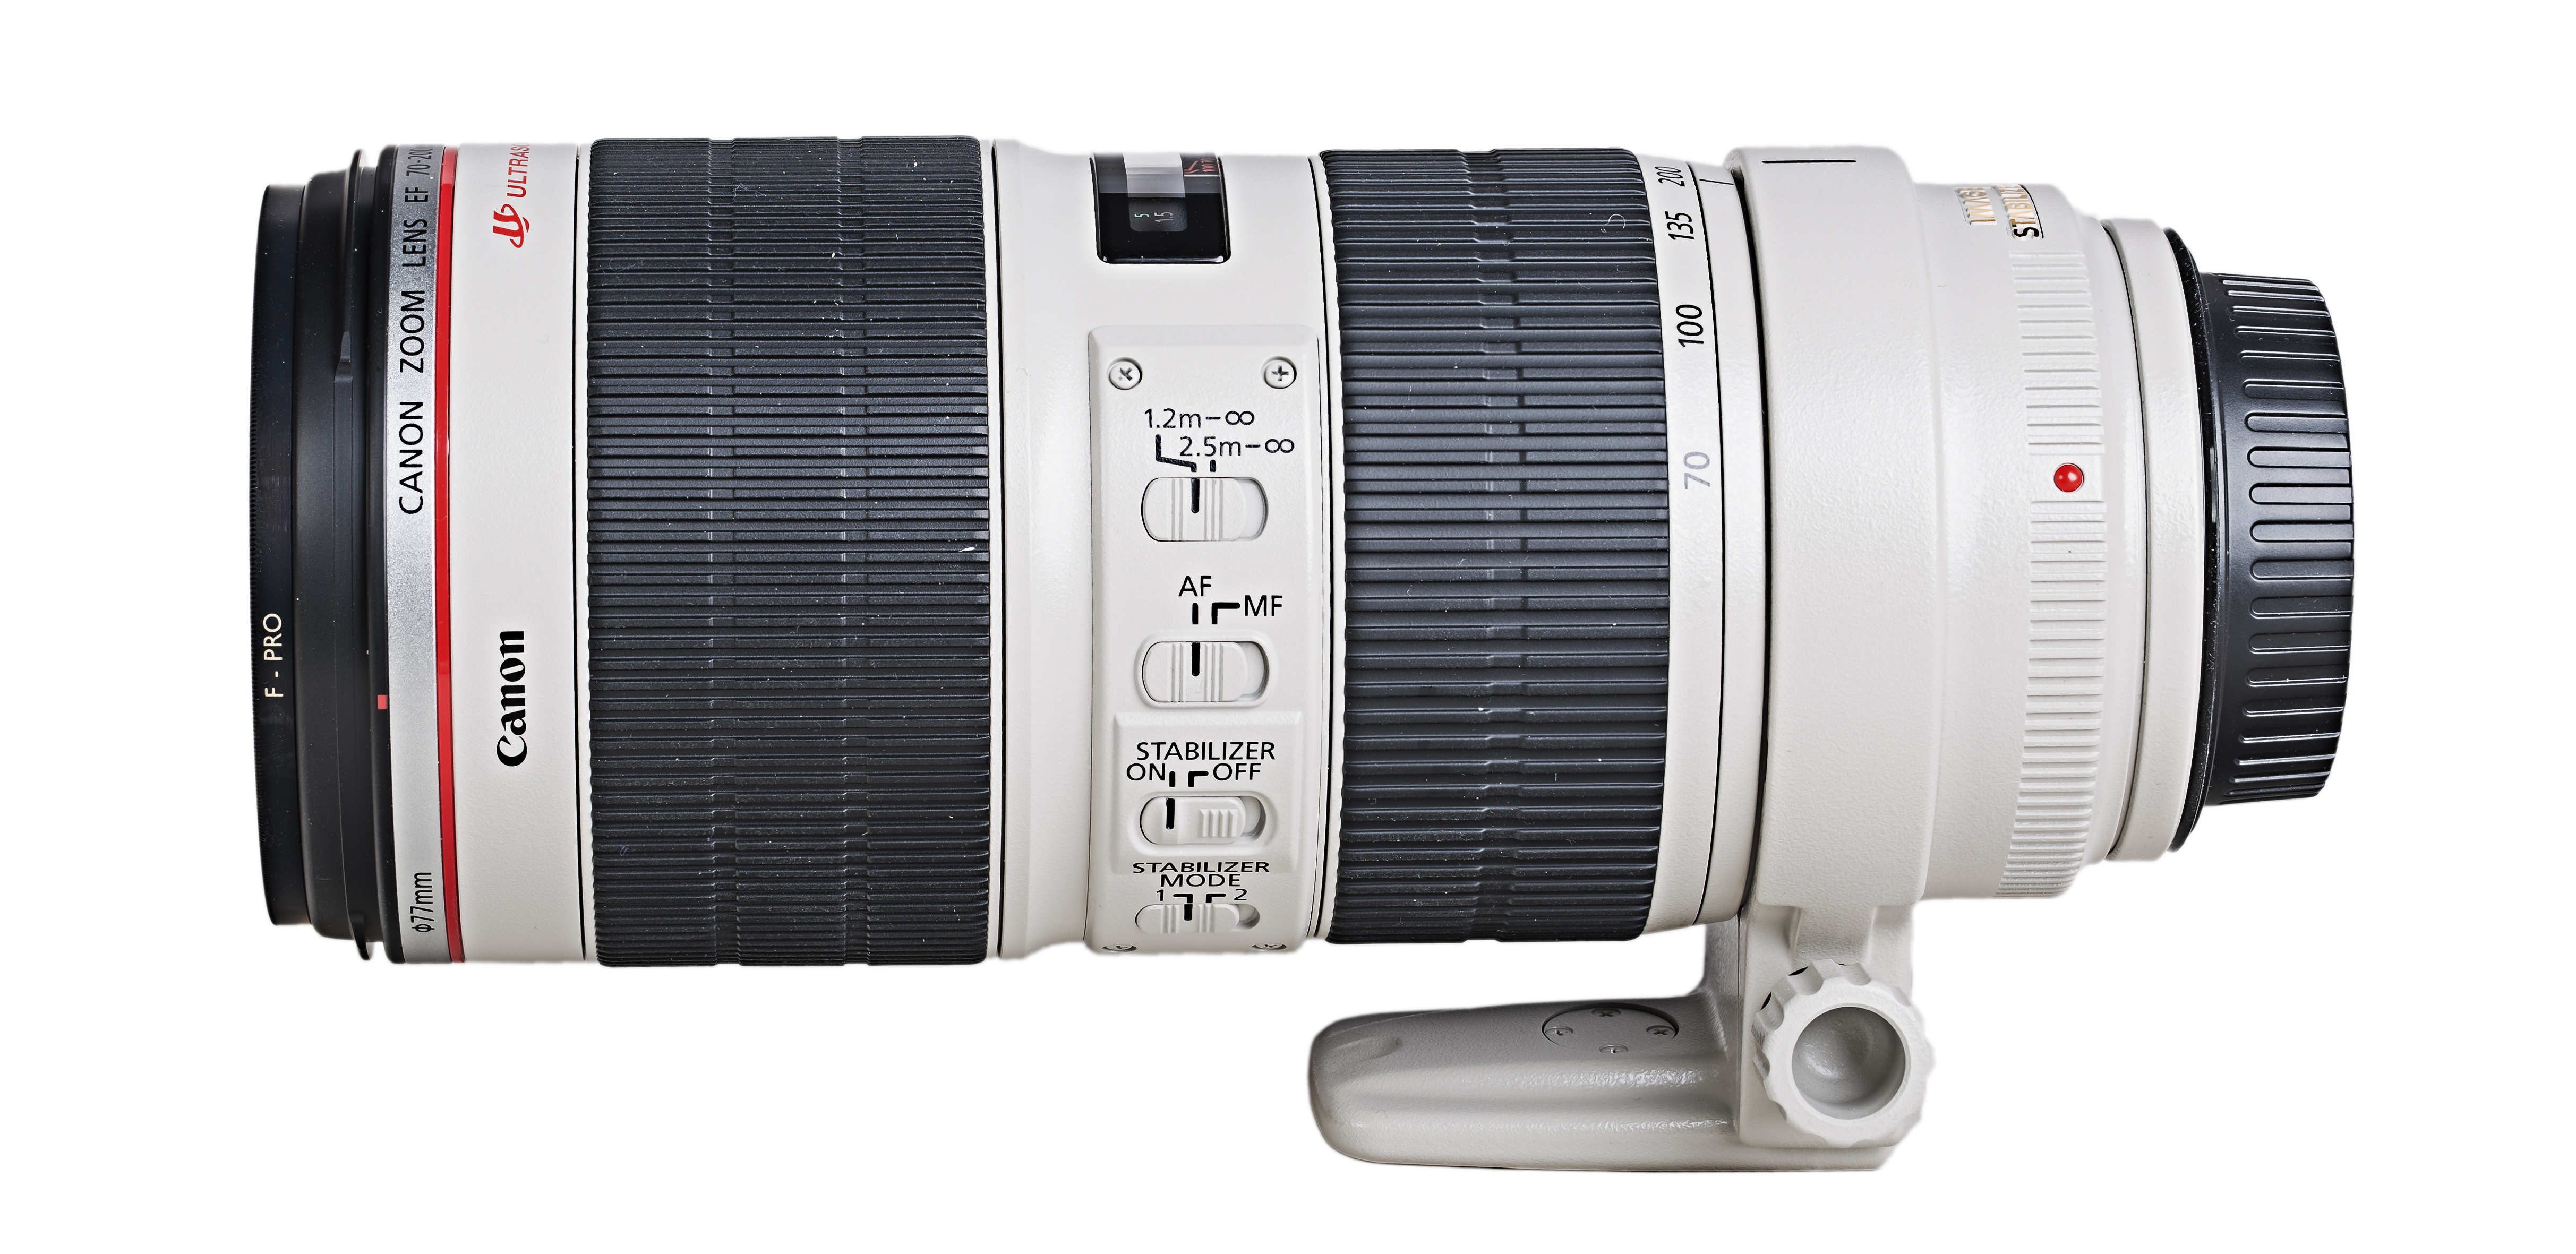 Canon_Zoom-Lens_EF_70-200_F2.8L_IS_II_USM-01a_